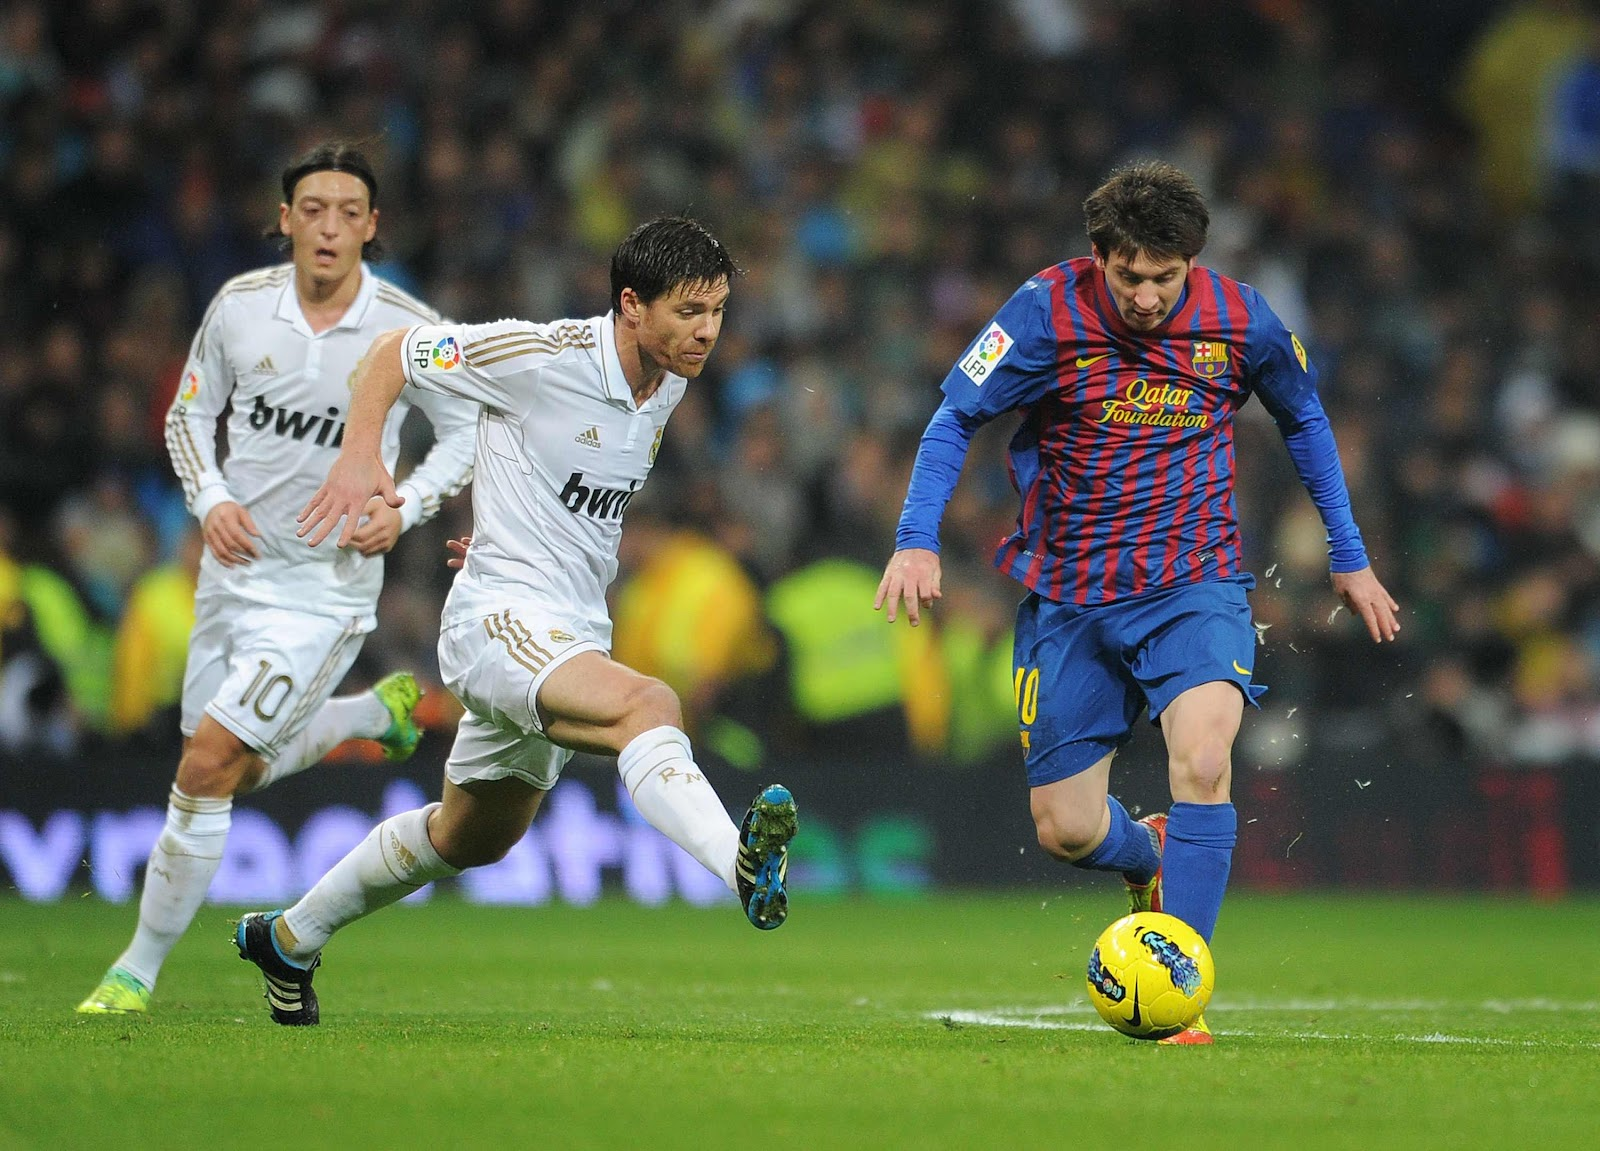 barcelona vs real madrid 2012   ALOjamiento de IMgenes 1600x1151